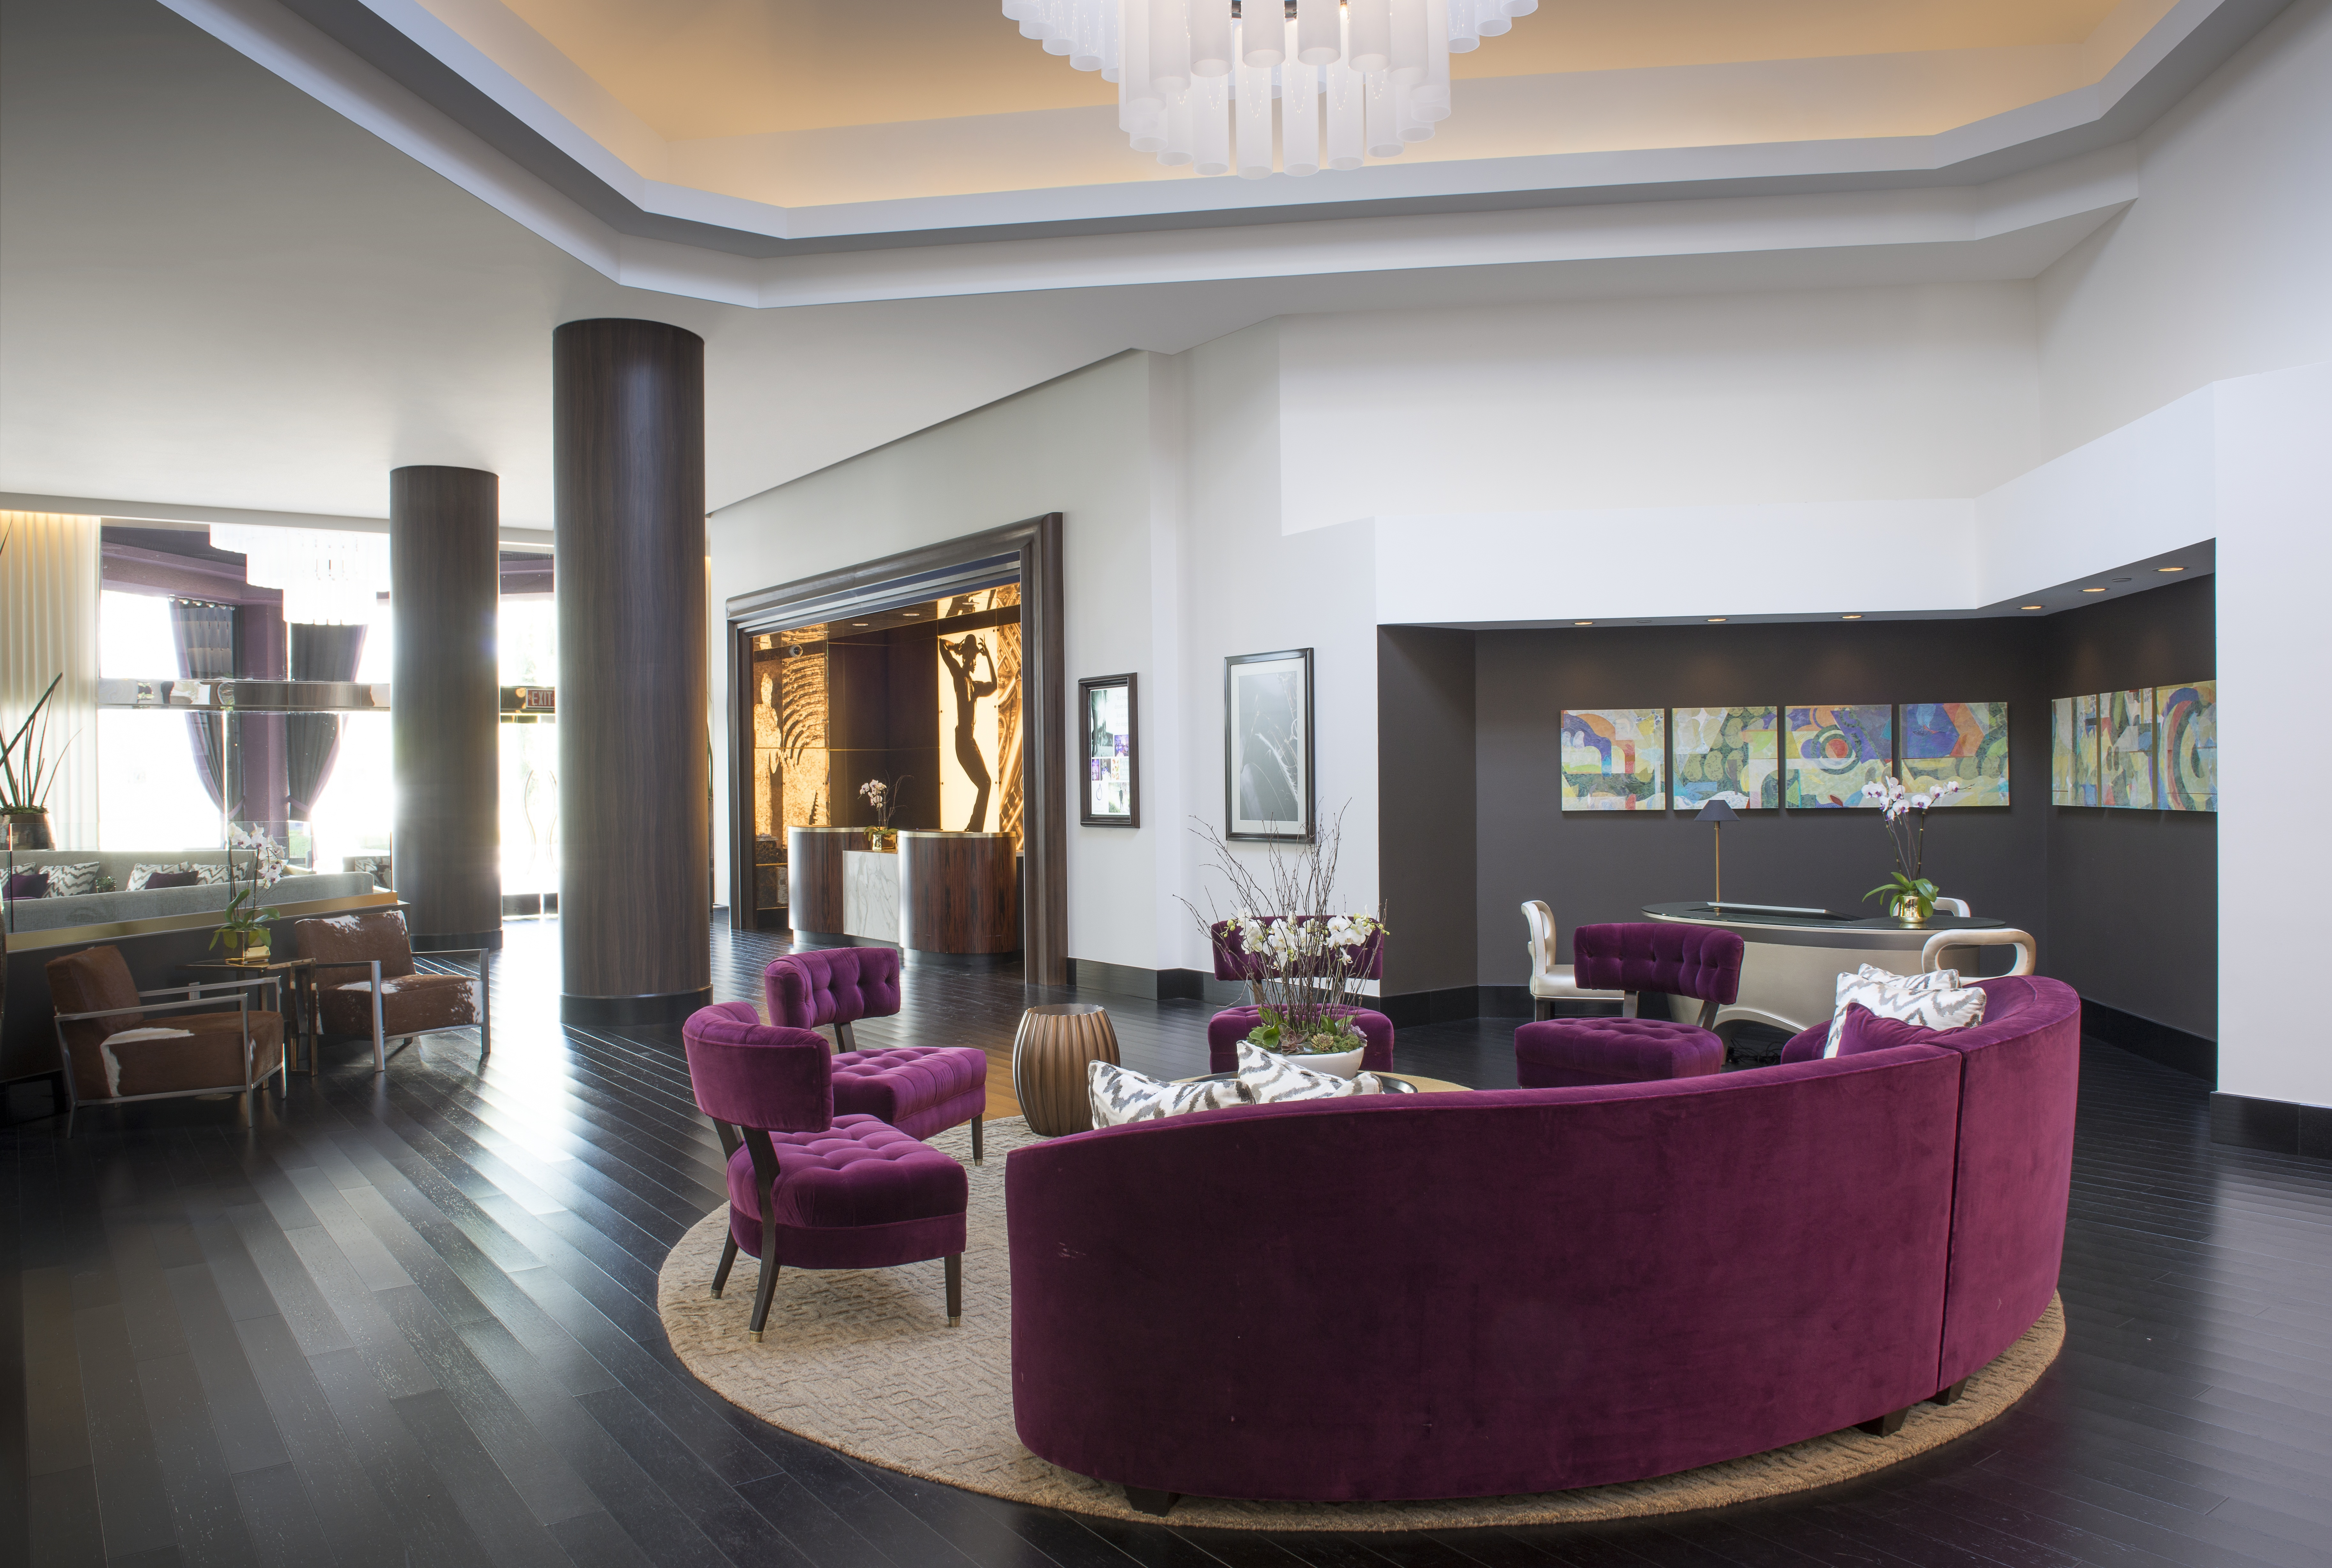 Three 39 s a charm wyndham hotels and resorts offers three for The wyndham